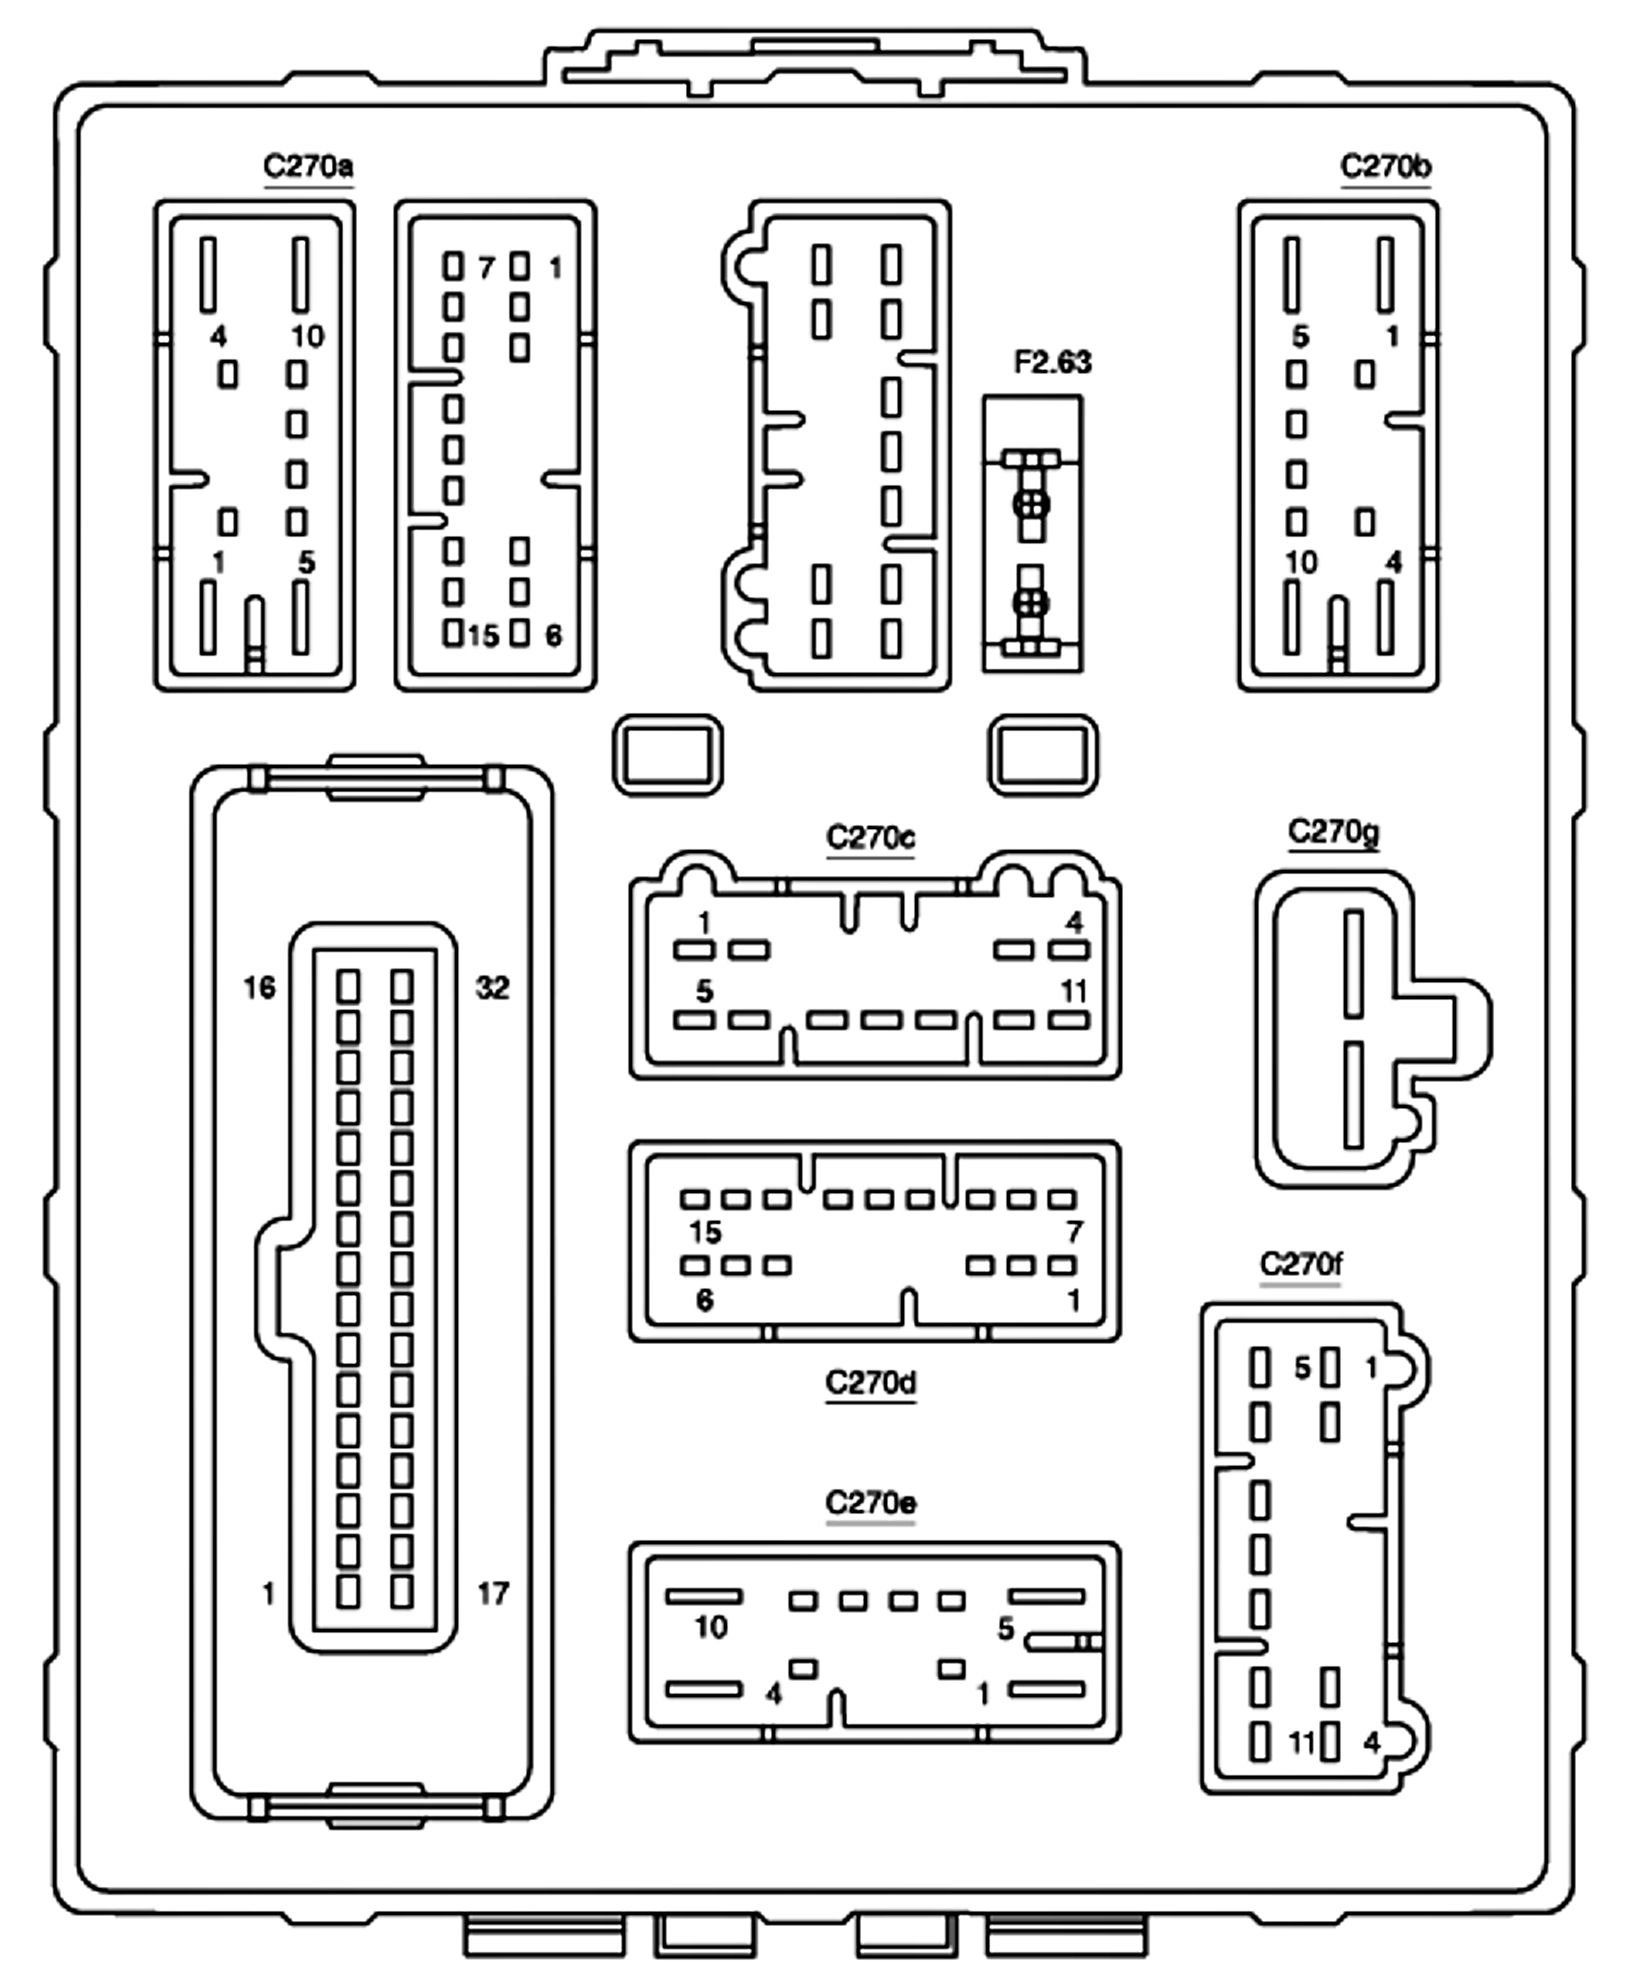 Is There Any Place I Can Get A Fuse Box Layout Diagram So